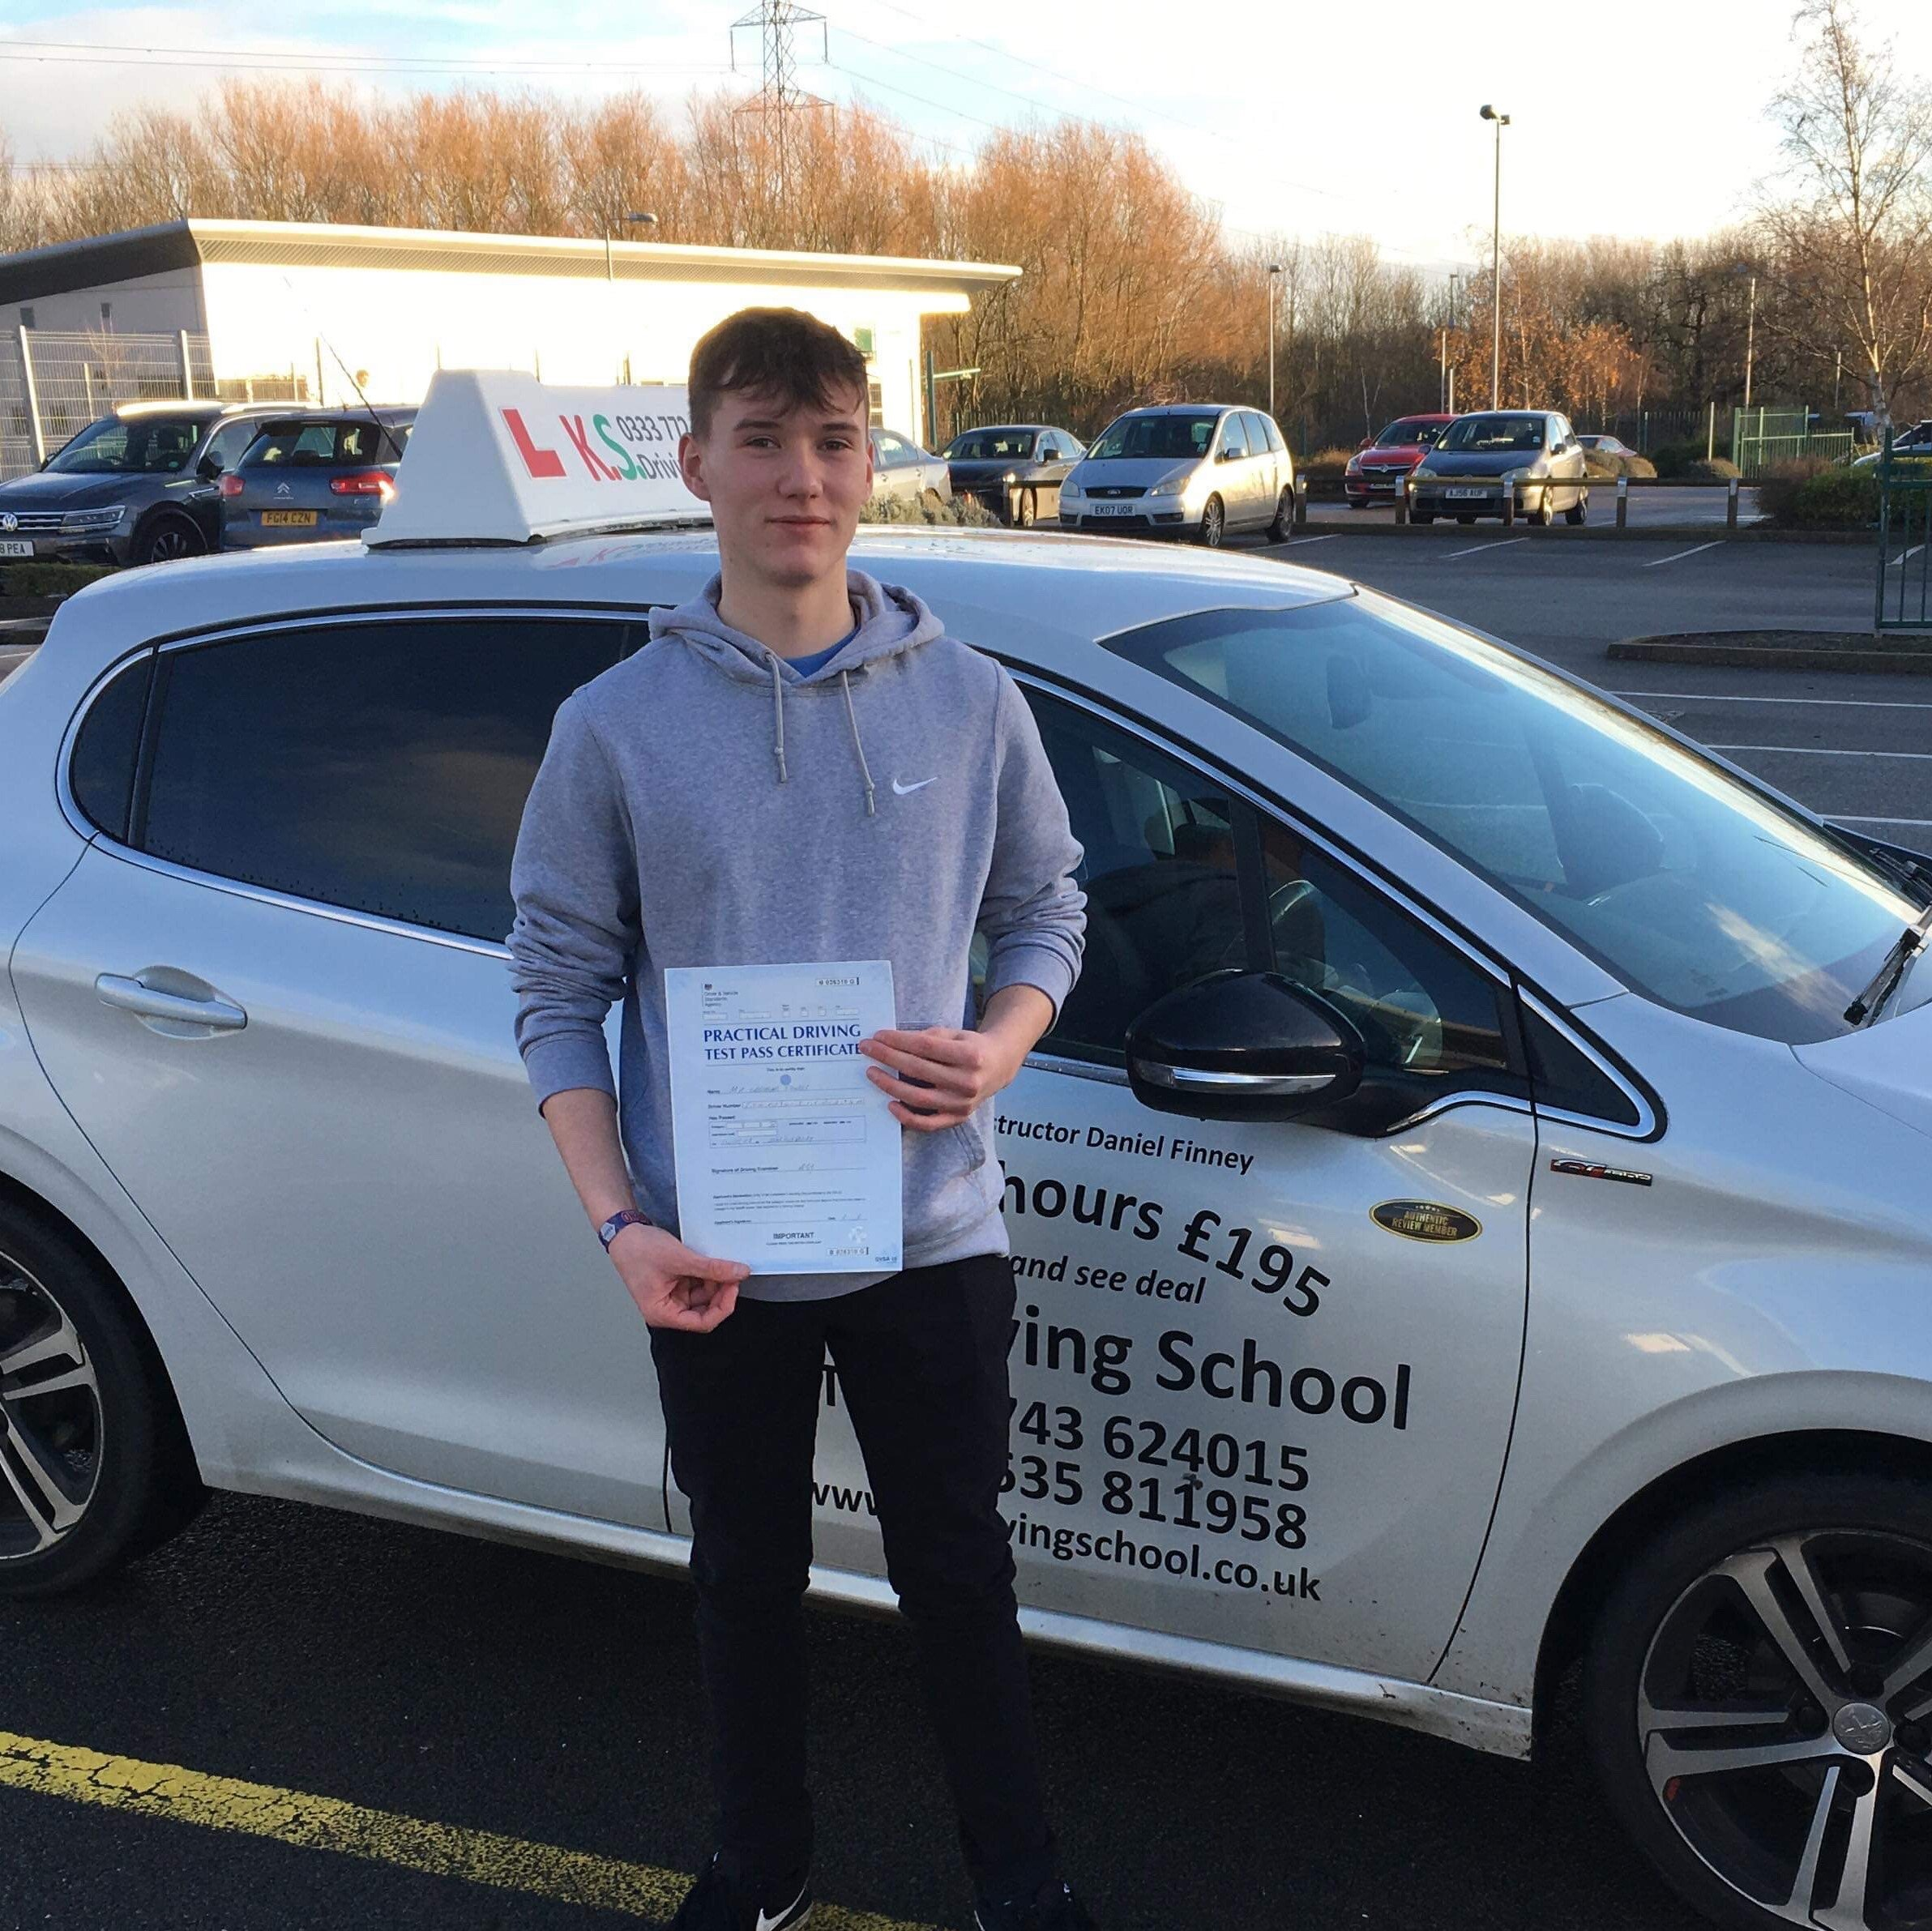 Driving Test Pass in Shrewsbury 20th December